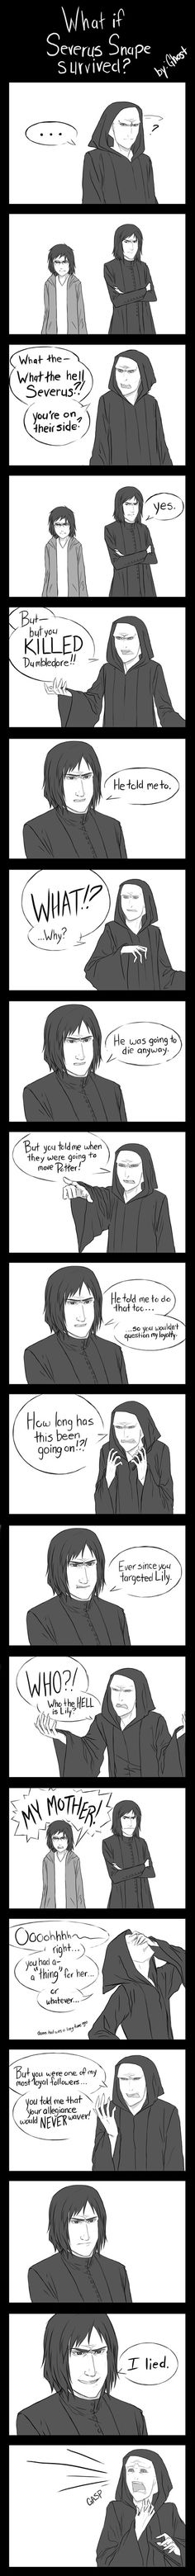 What If Severus Snape Survived? [Comic]